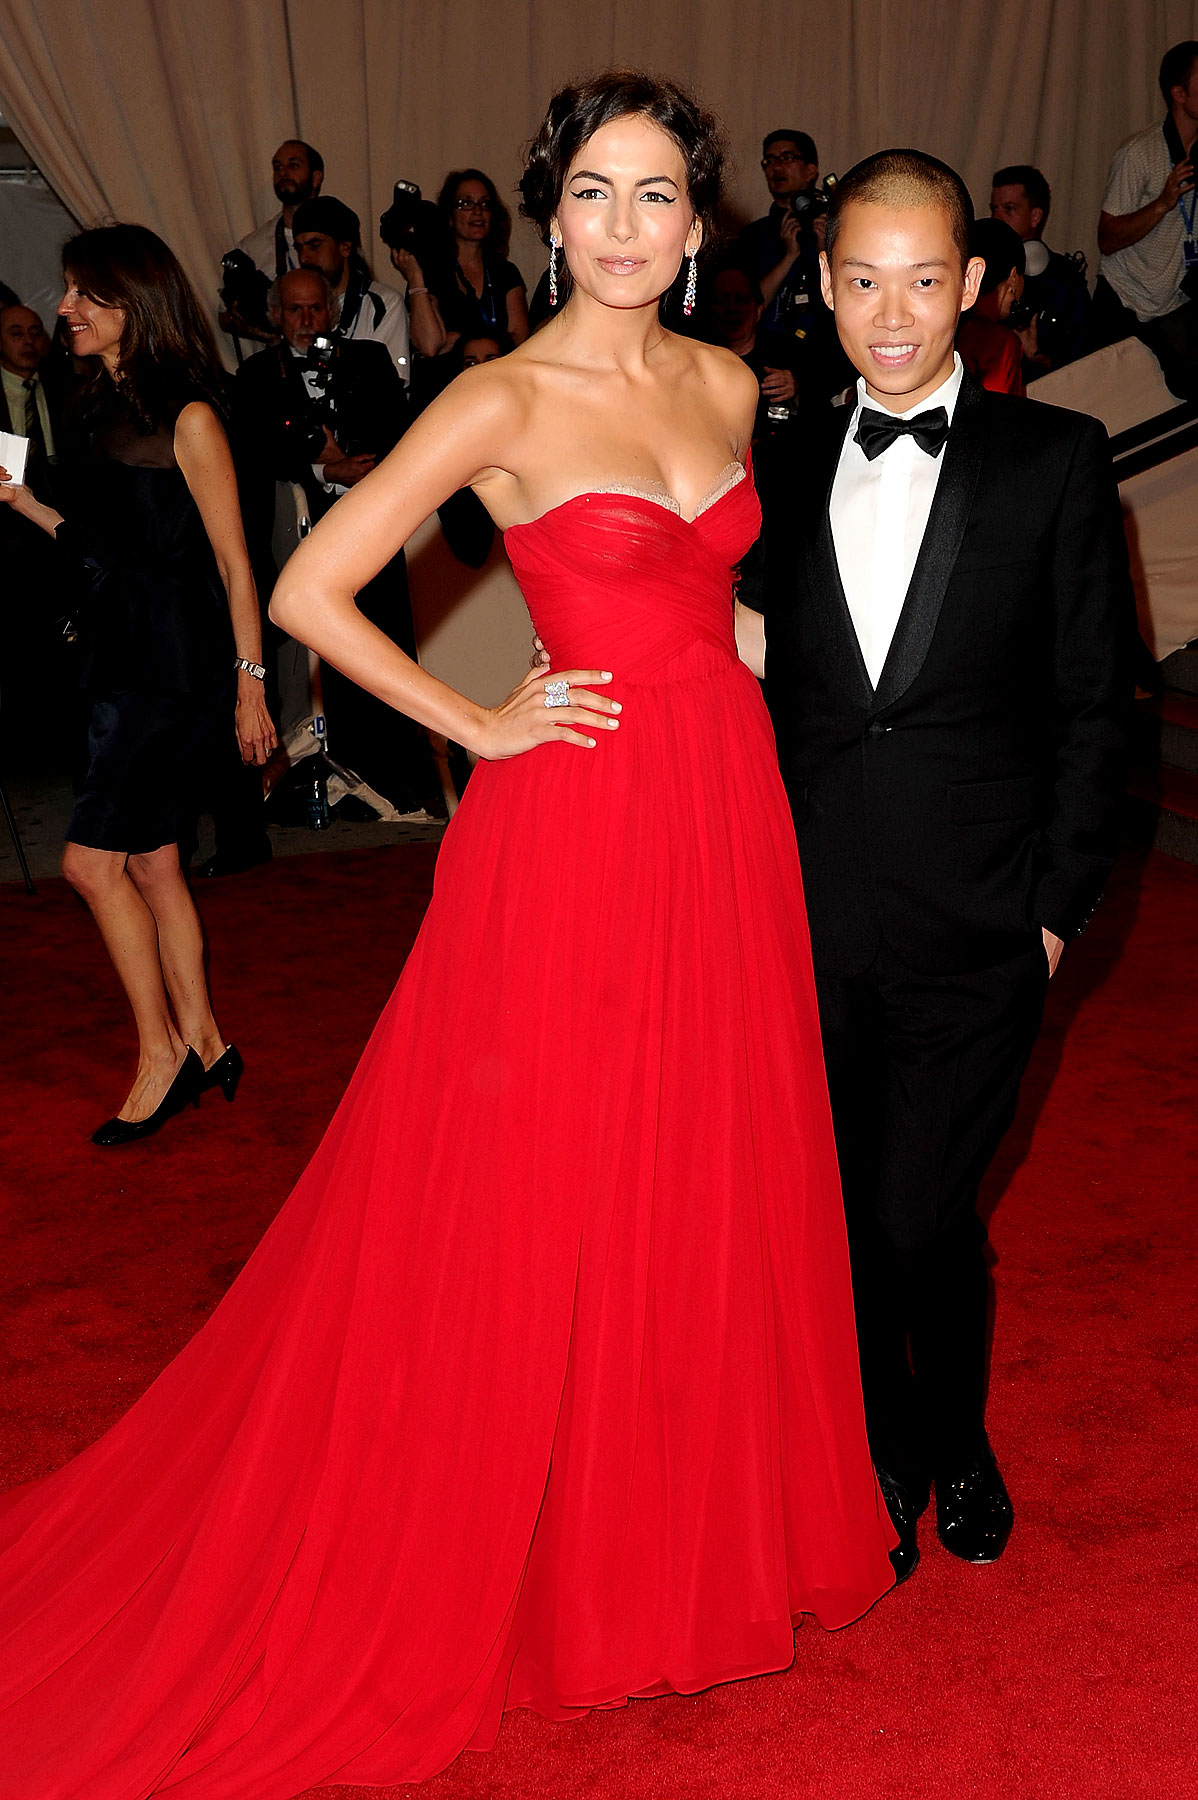 Designers Flex Their Fashion Muscles At The Met Gala (PHOTOS)